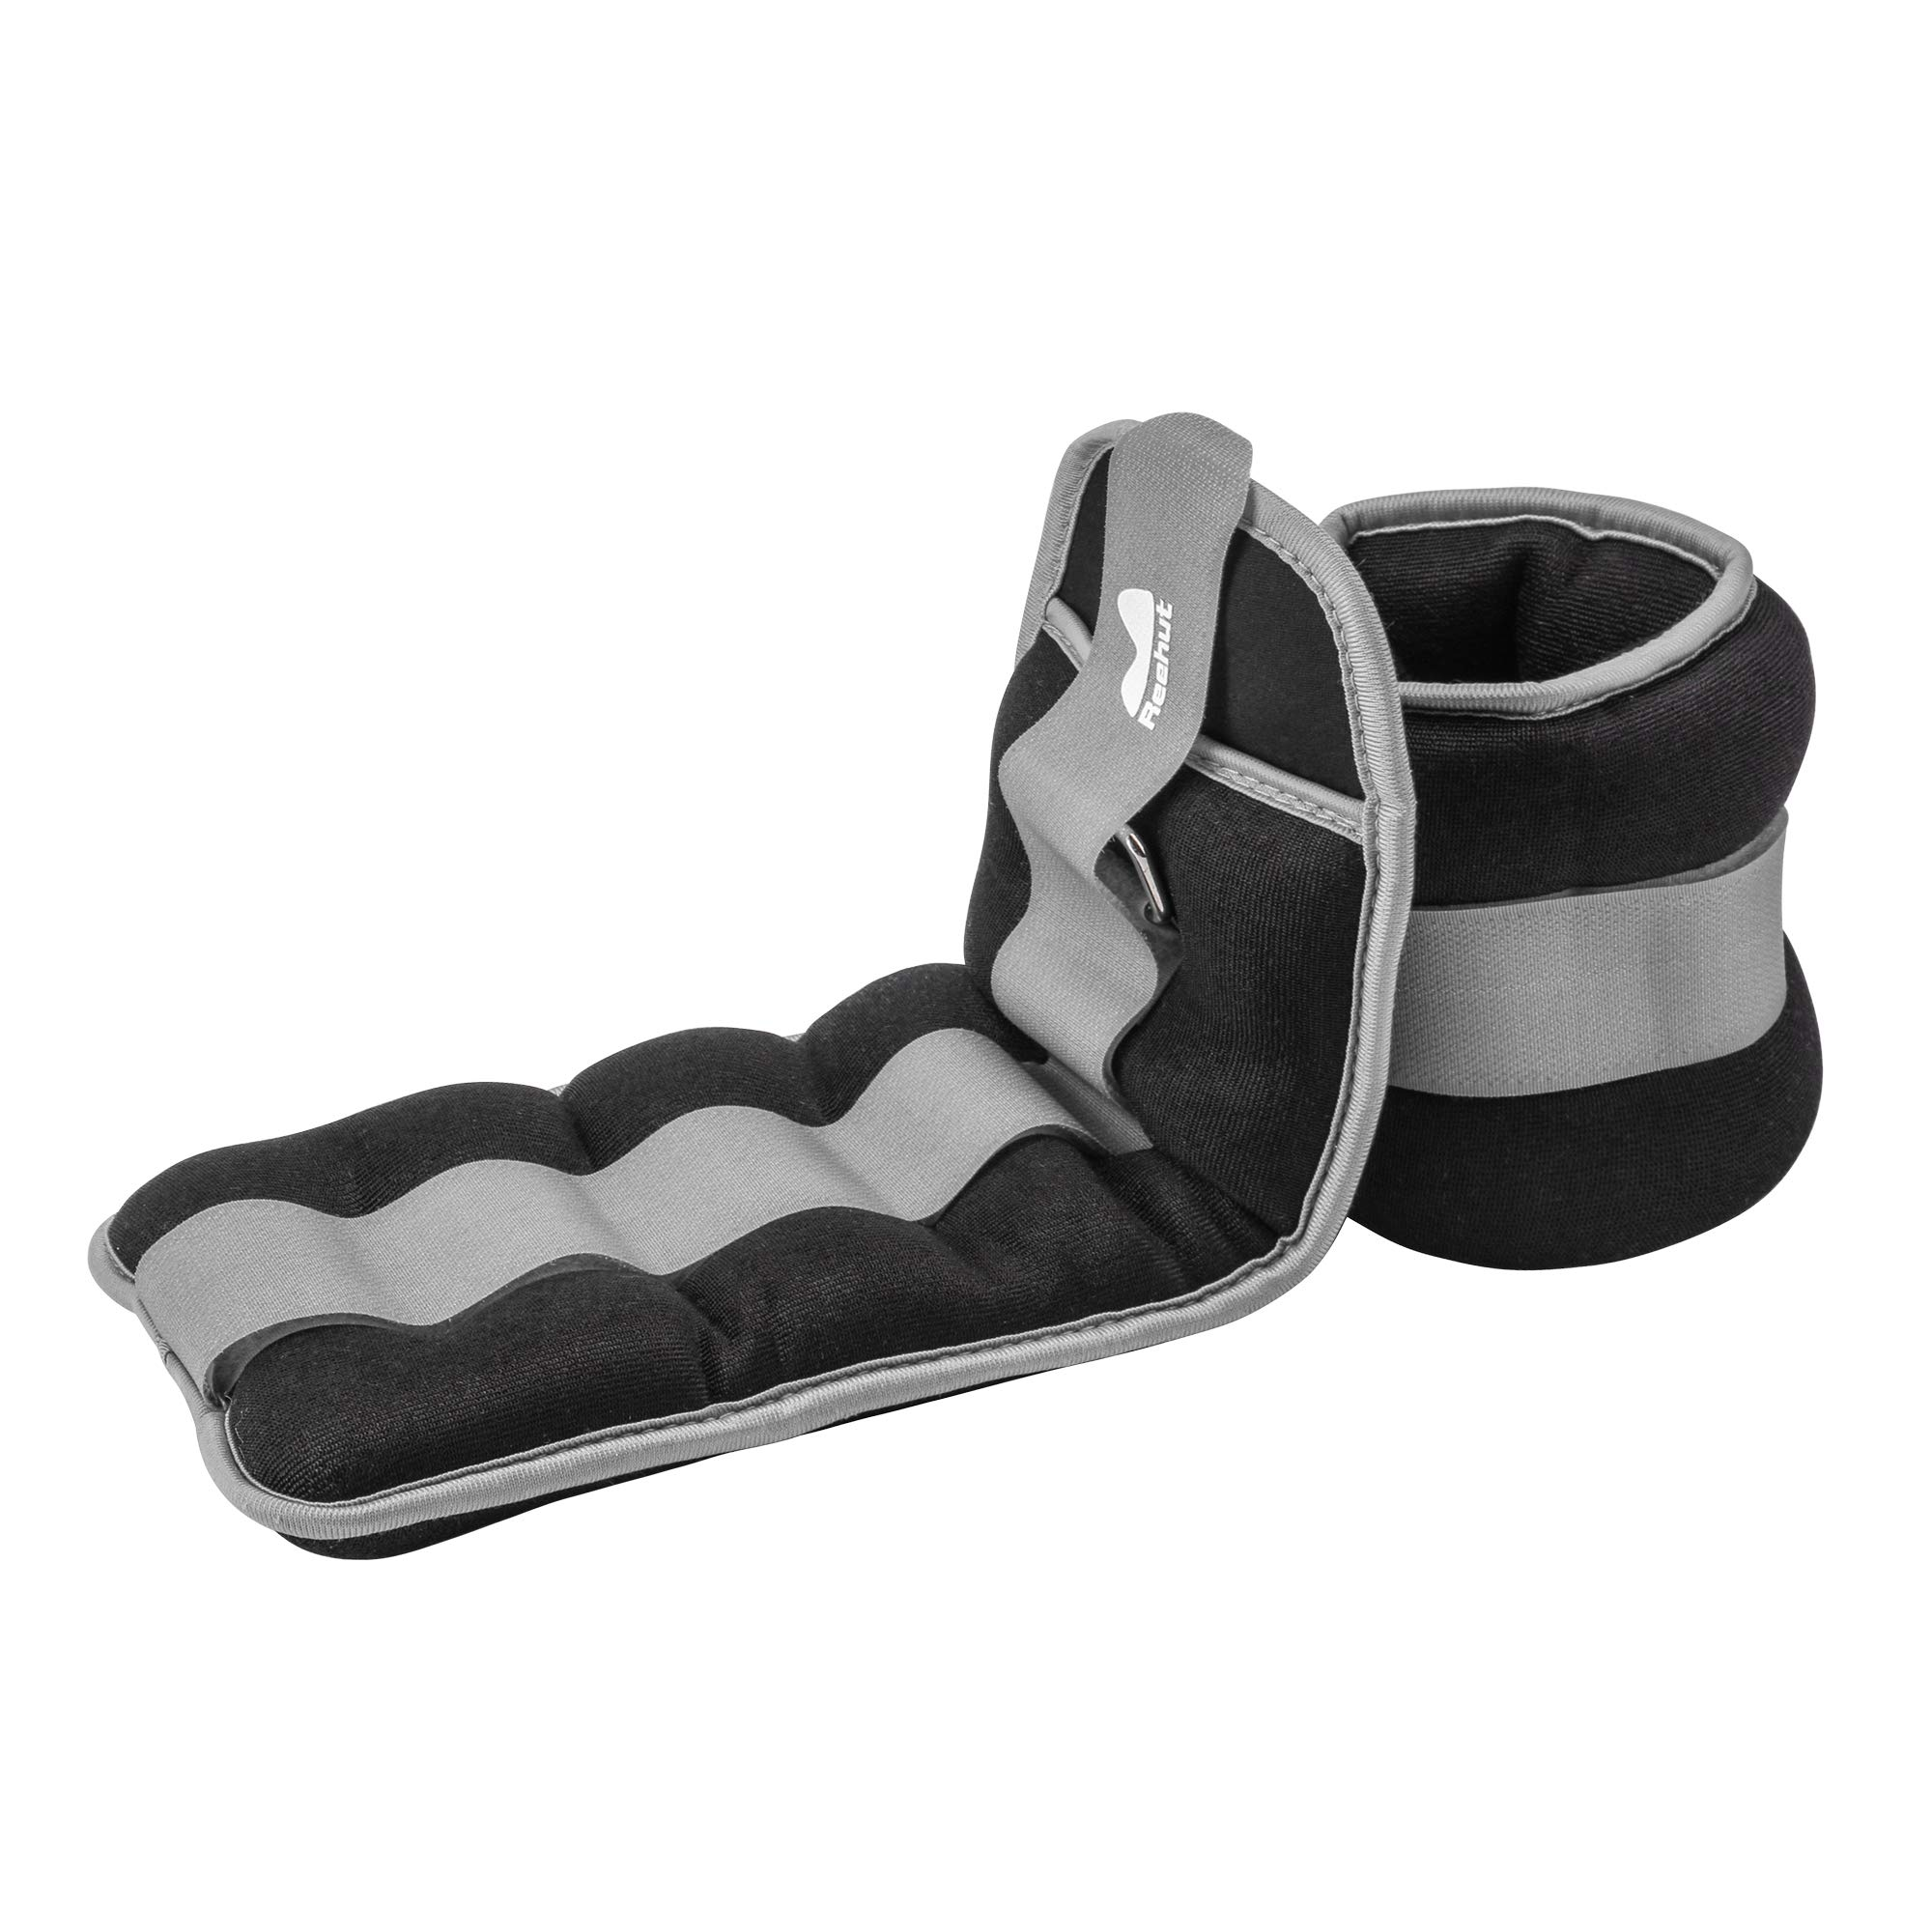 REEHUT Ankle/Wrist Weights (1 Pair) with Adjustable Strap for Fitness, Exercise, Walking, Jogging, Gymnastics, Aerobics, Gym - Gray - 5 lbs x 2